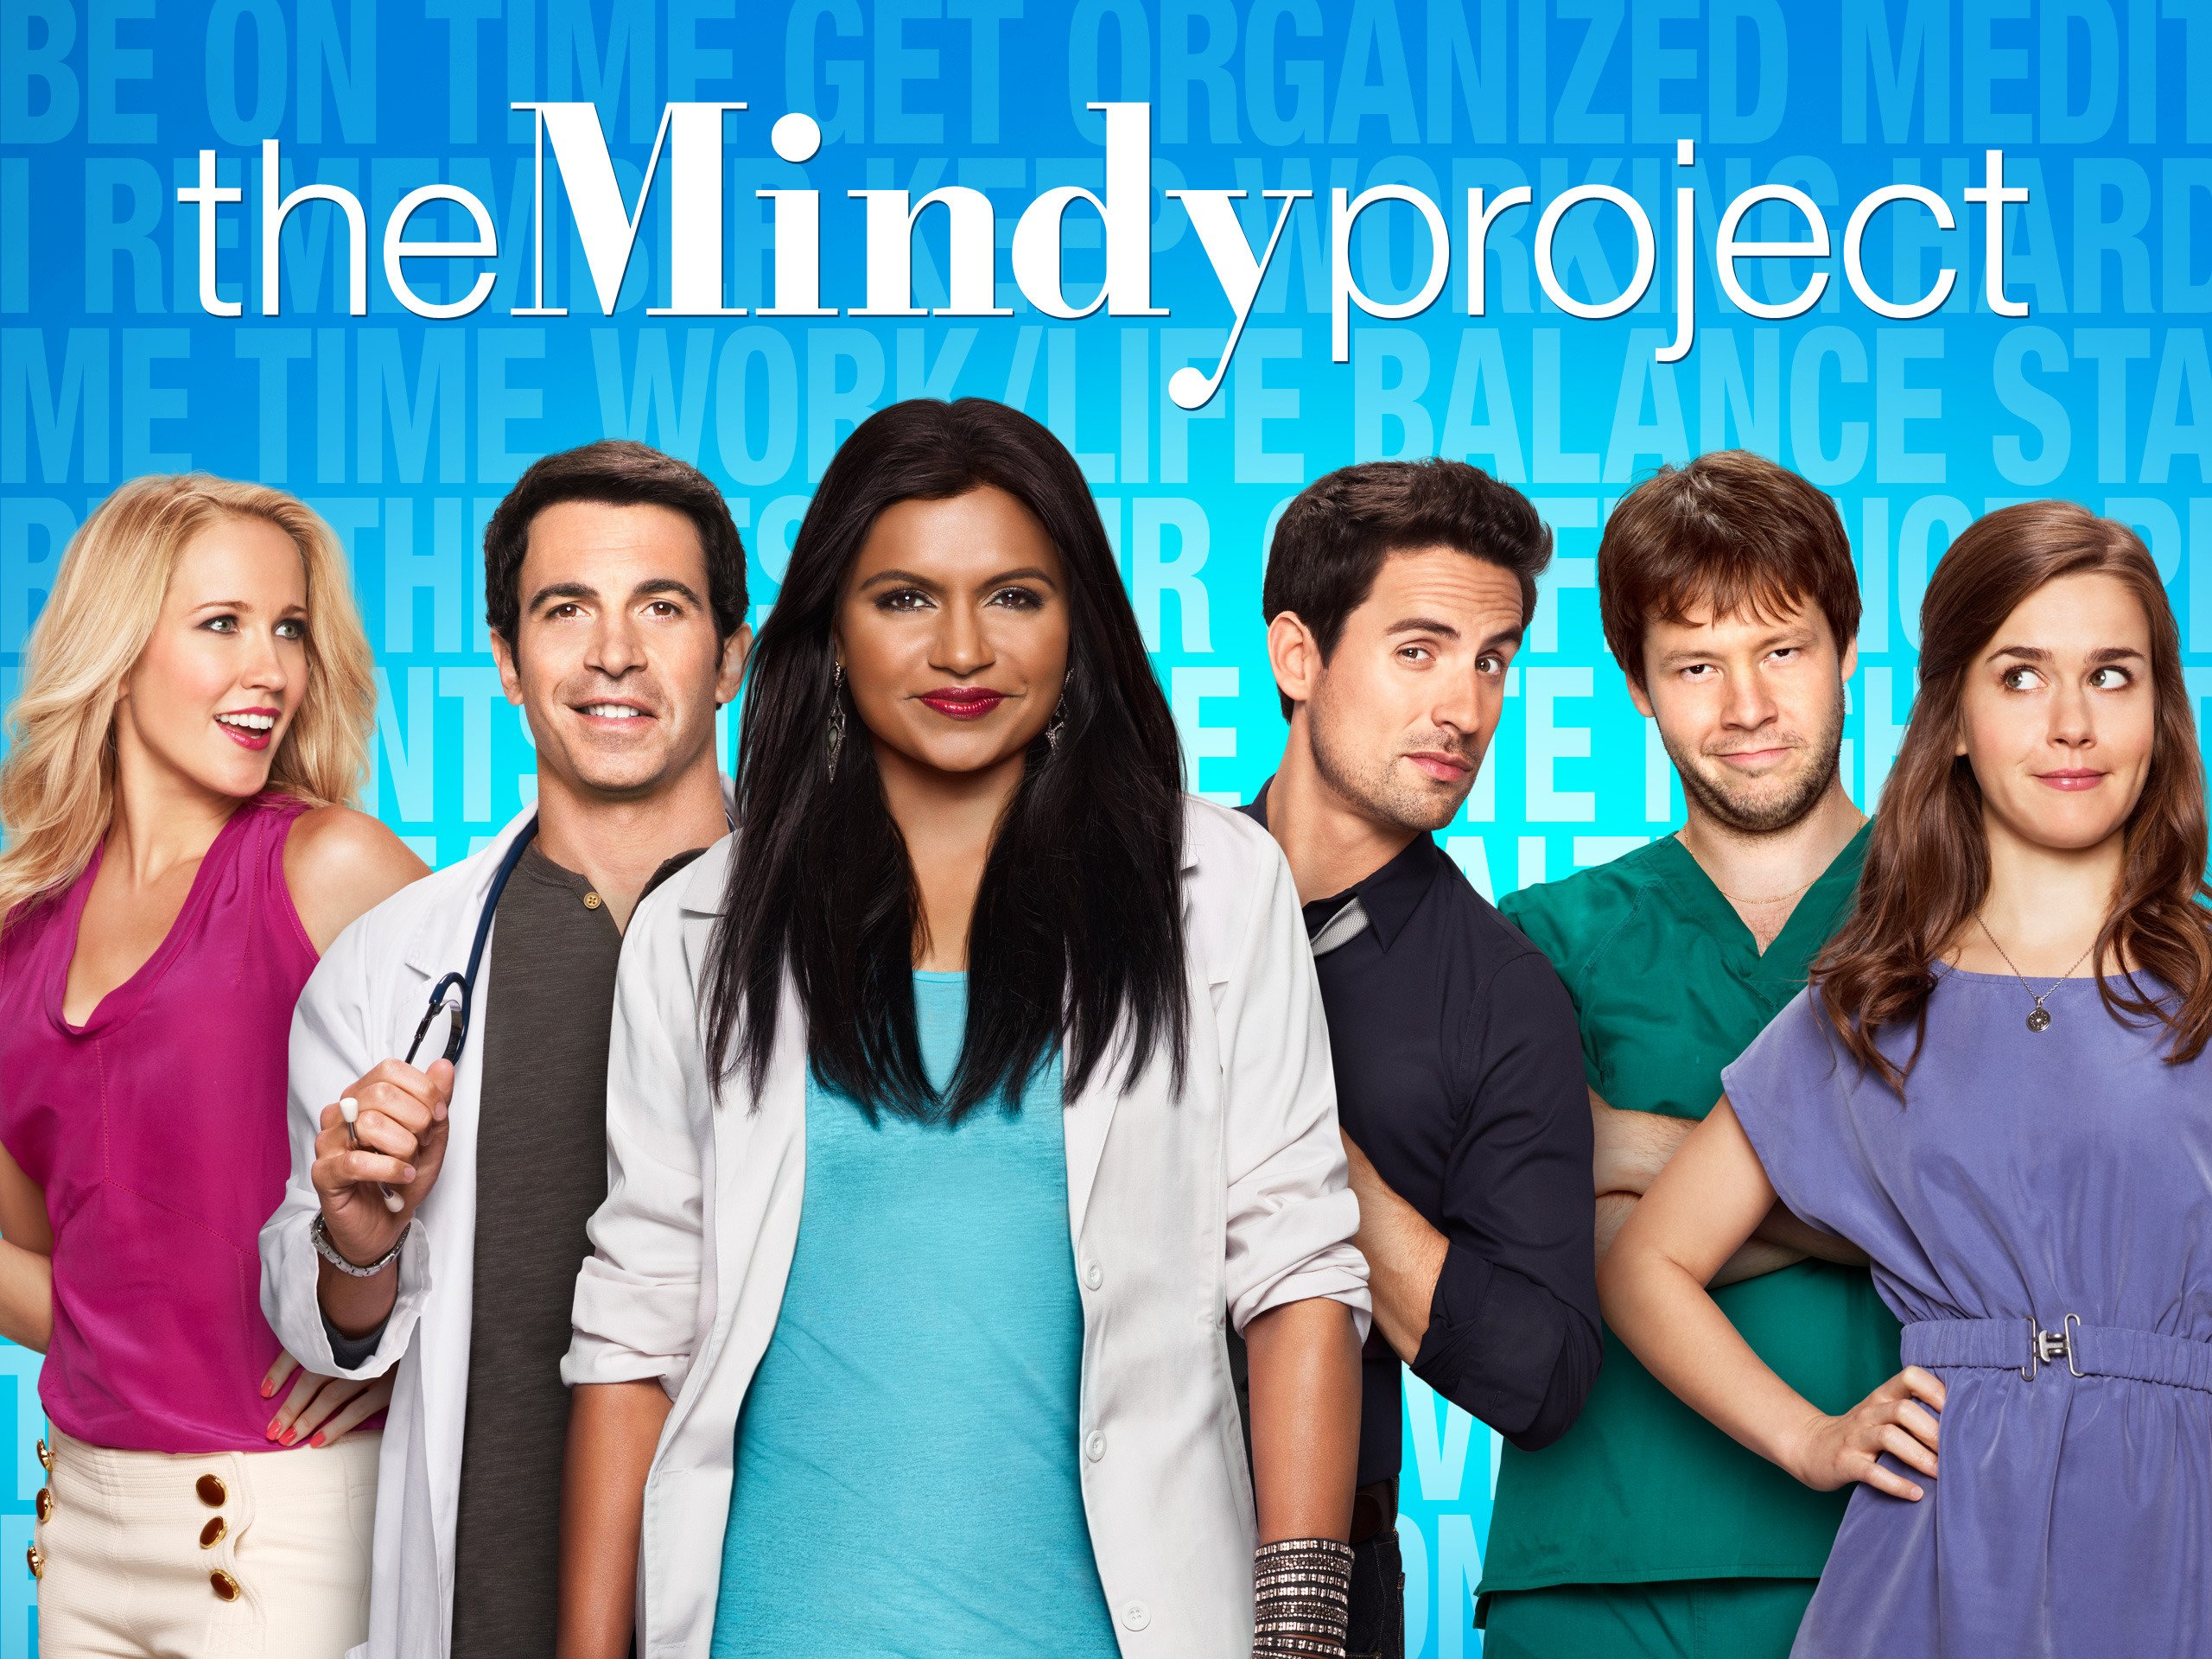 Watch The Mindy Project Season 1 | Prime Video